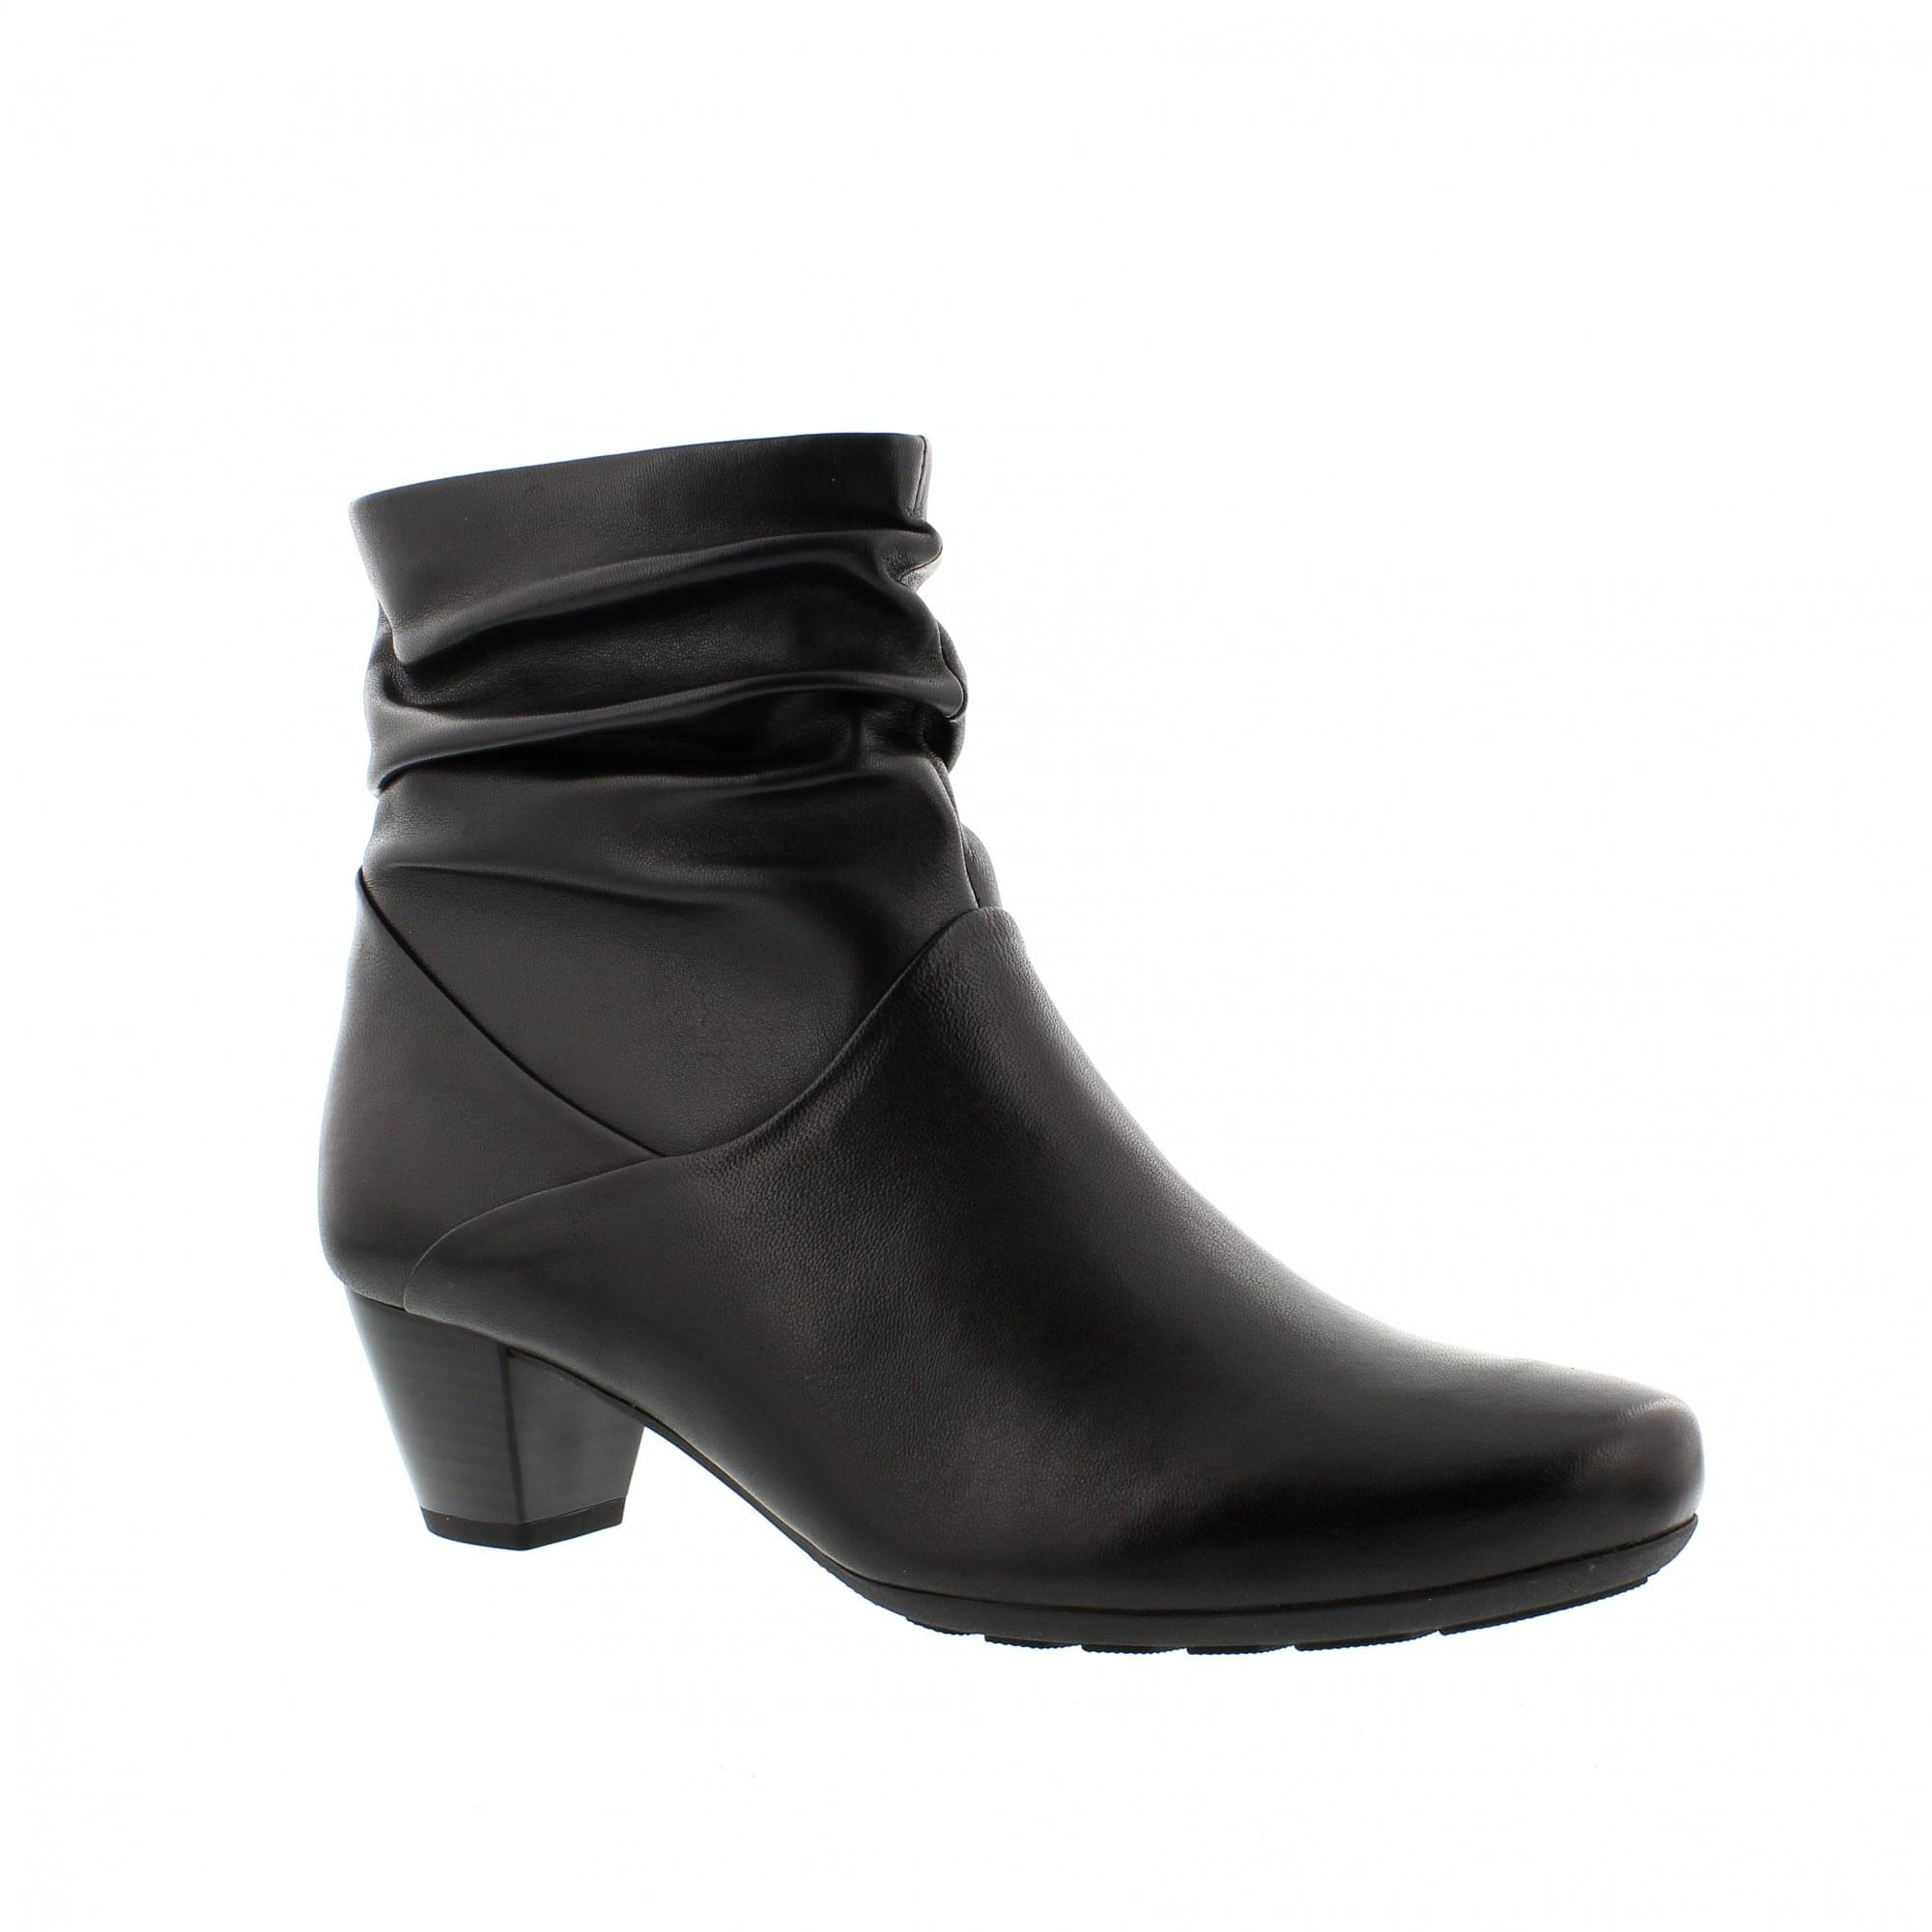 ae243cf29d9d59 Gabor Kingston 92-823-57 Black Leather Ankle Boots